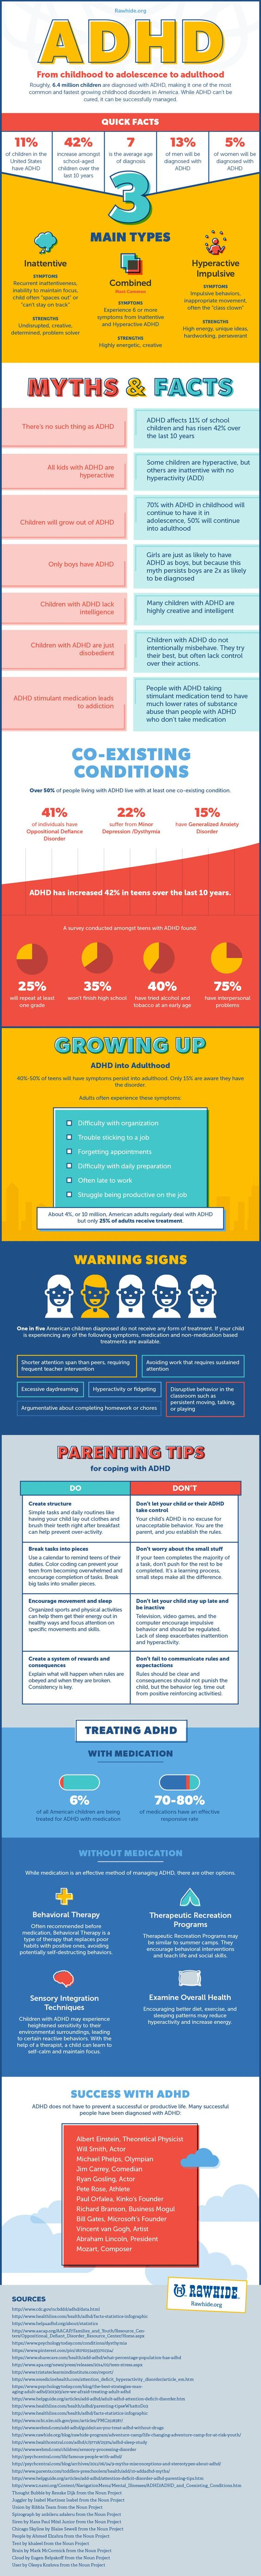 ADHD infographic put together by the team at Rawhide Boys Ranch. Everything from prevalence rates, types, warning signs, myths and facts, adult symptoms and parenting tips.  #fundraising #fundraisingADHD  Create your online fundraising campaign at http://gogetfunding.com